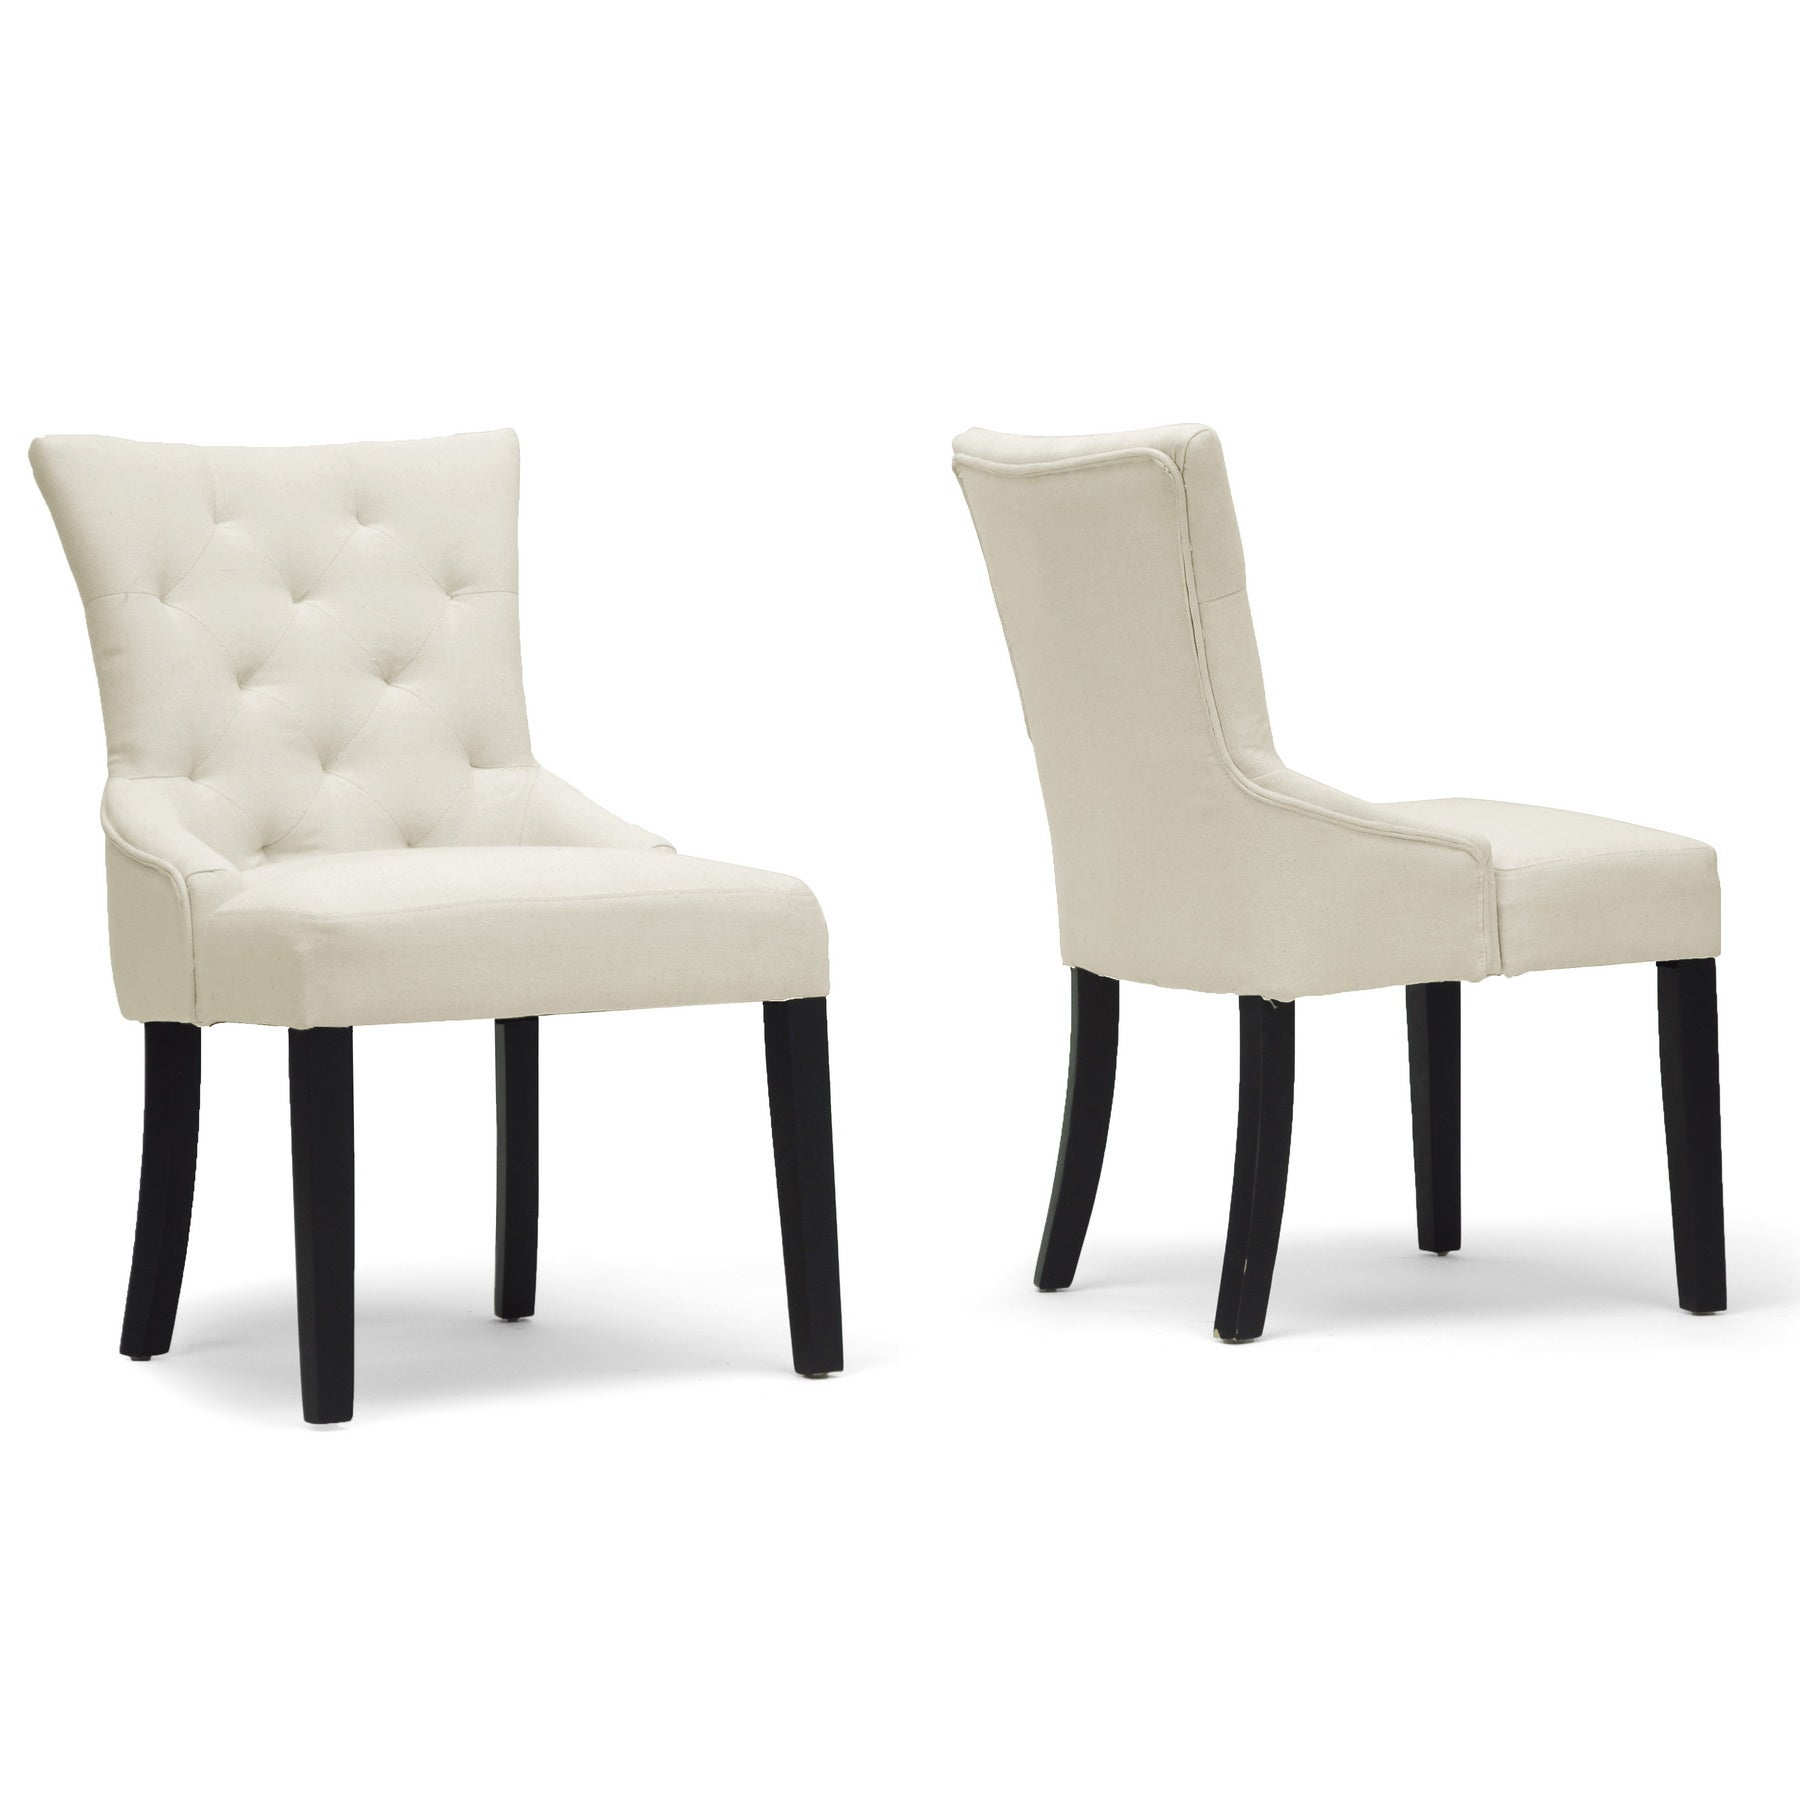 Epperton Beige Linen Modern Dining Chairs (Set of 2)